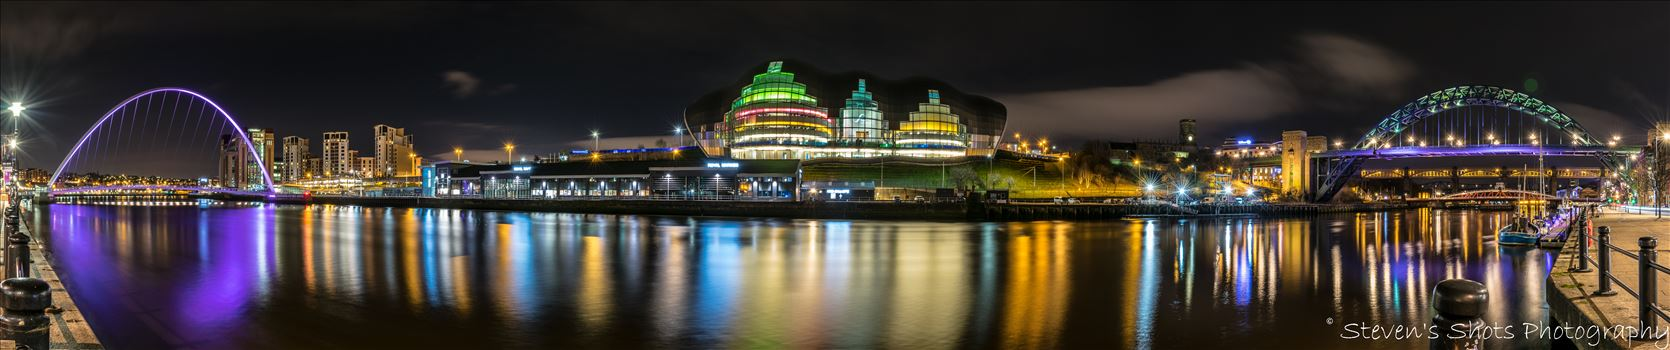 Panoramic of the quayside by Steven's Shots Photography